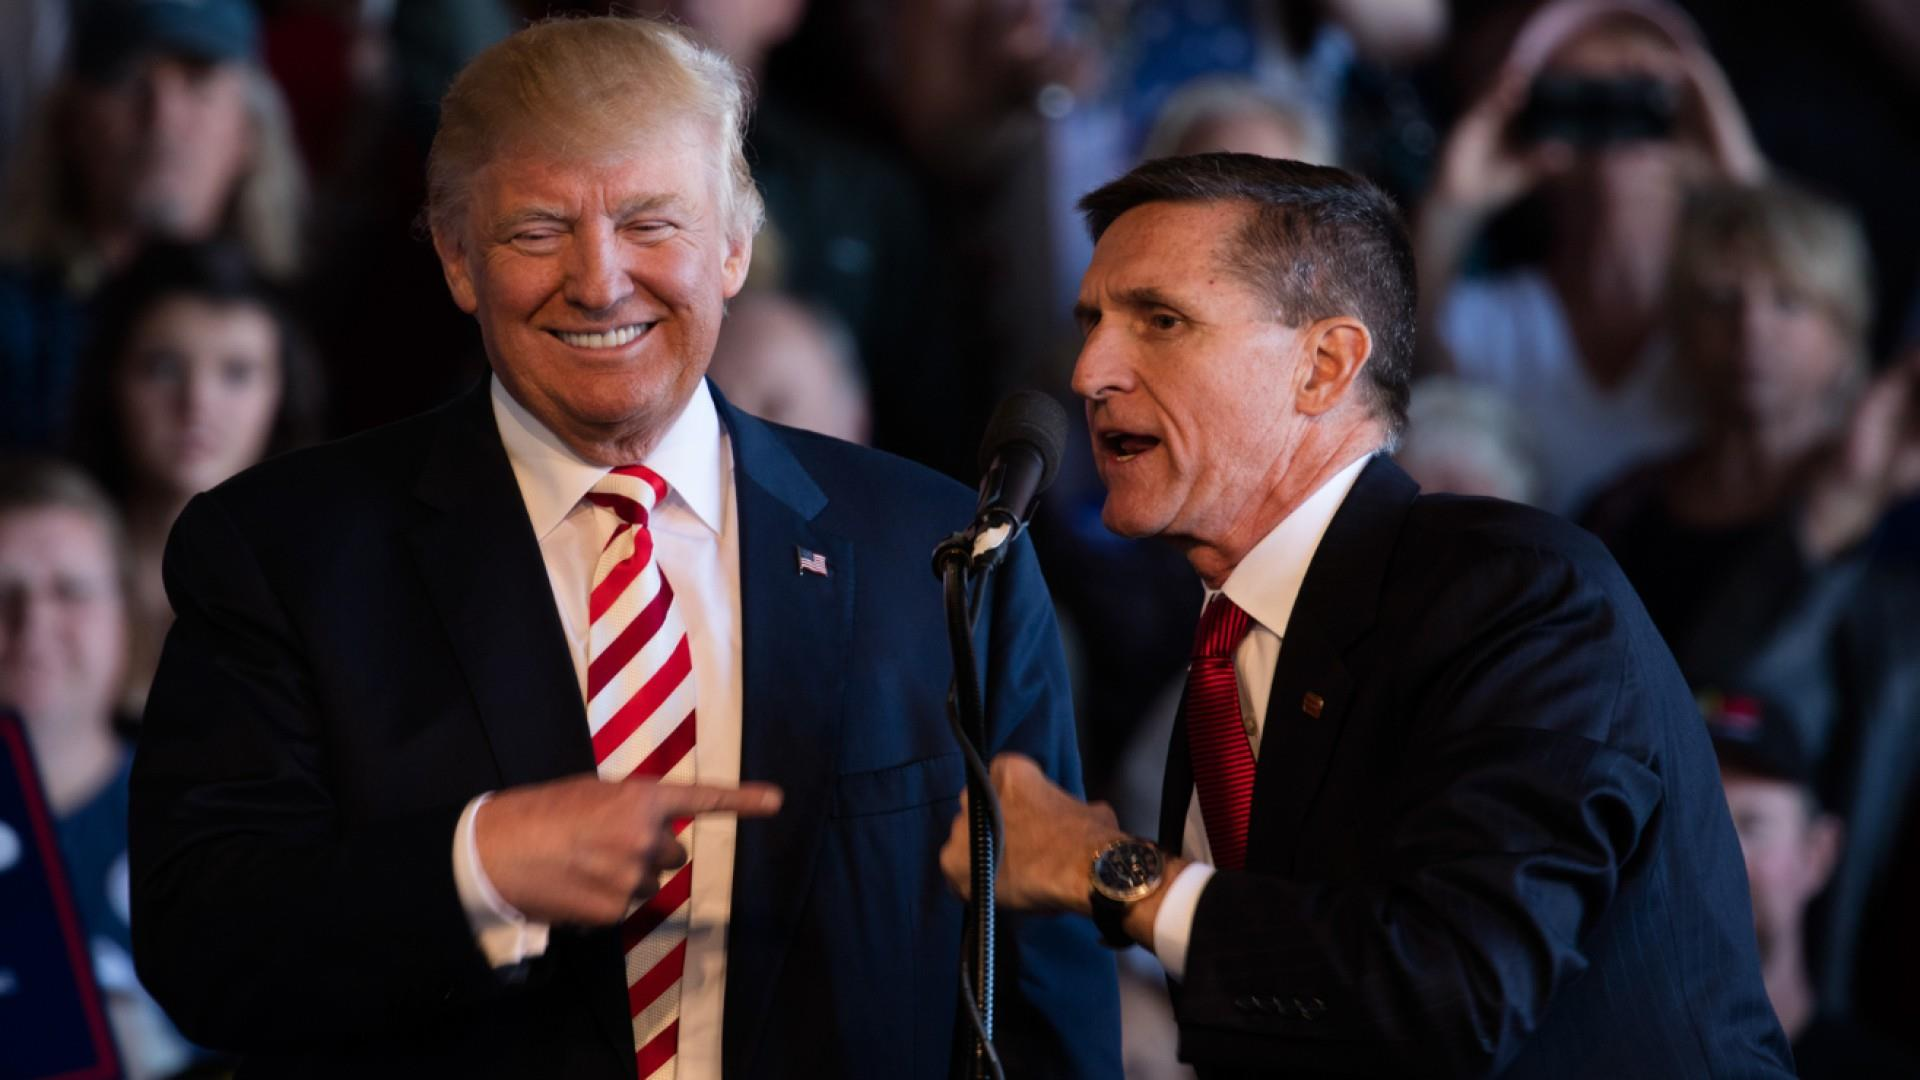 Trump says he was never warned about Flynn. (He was... repeatedly)